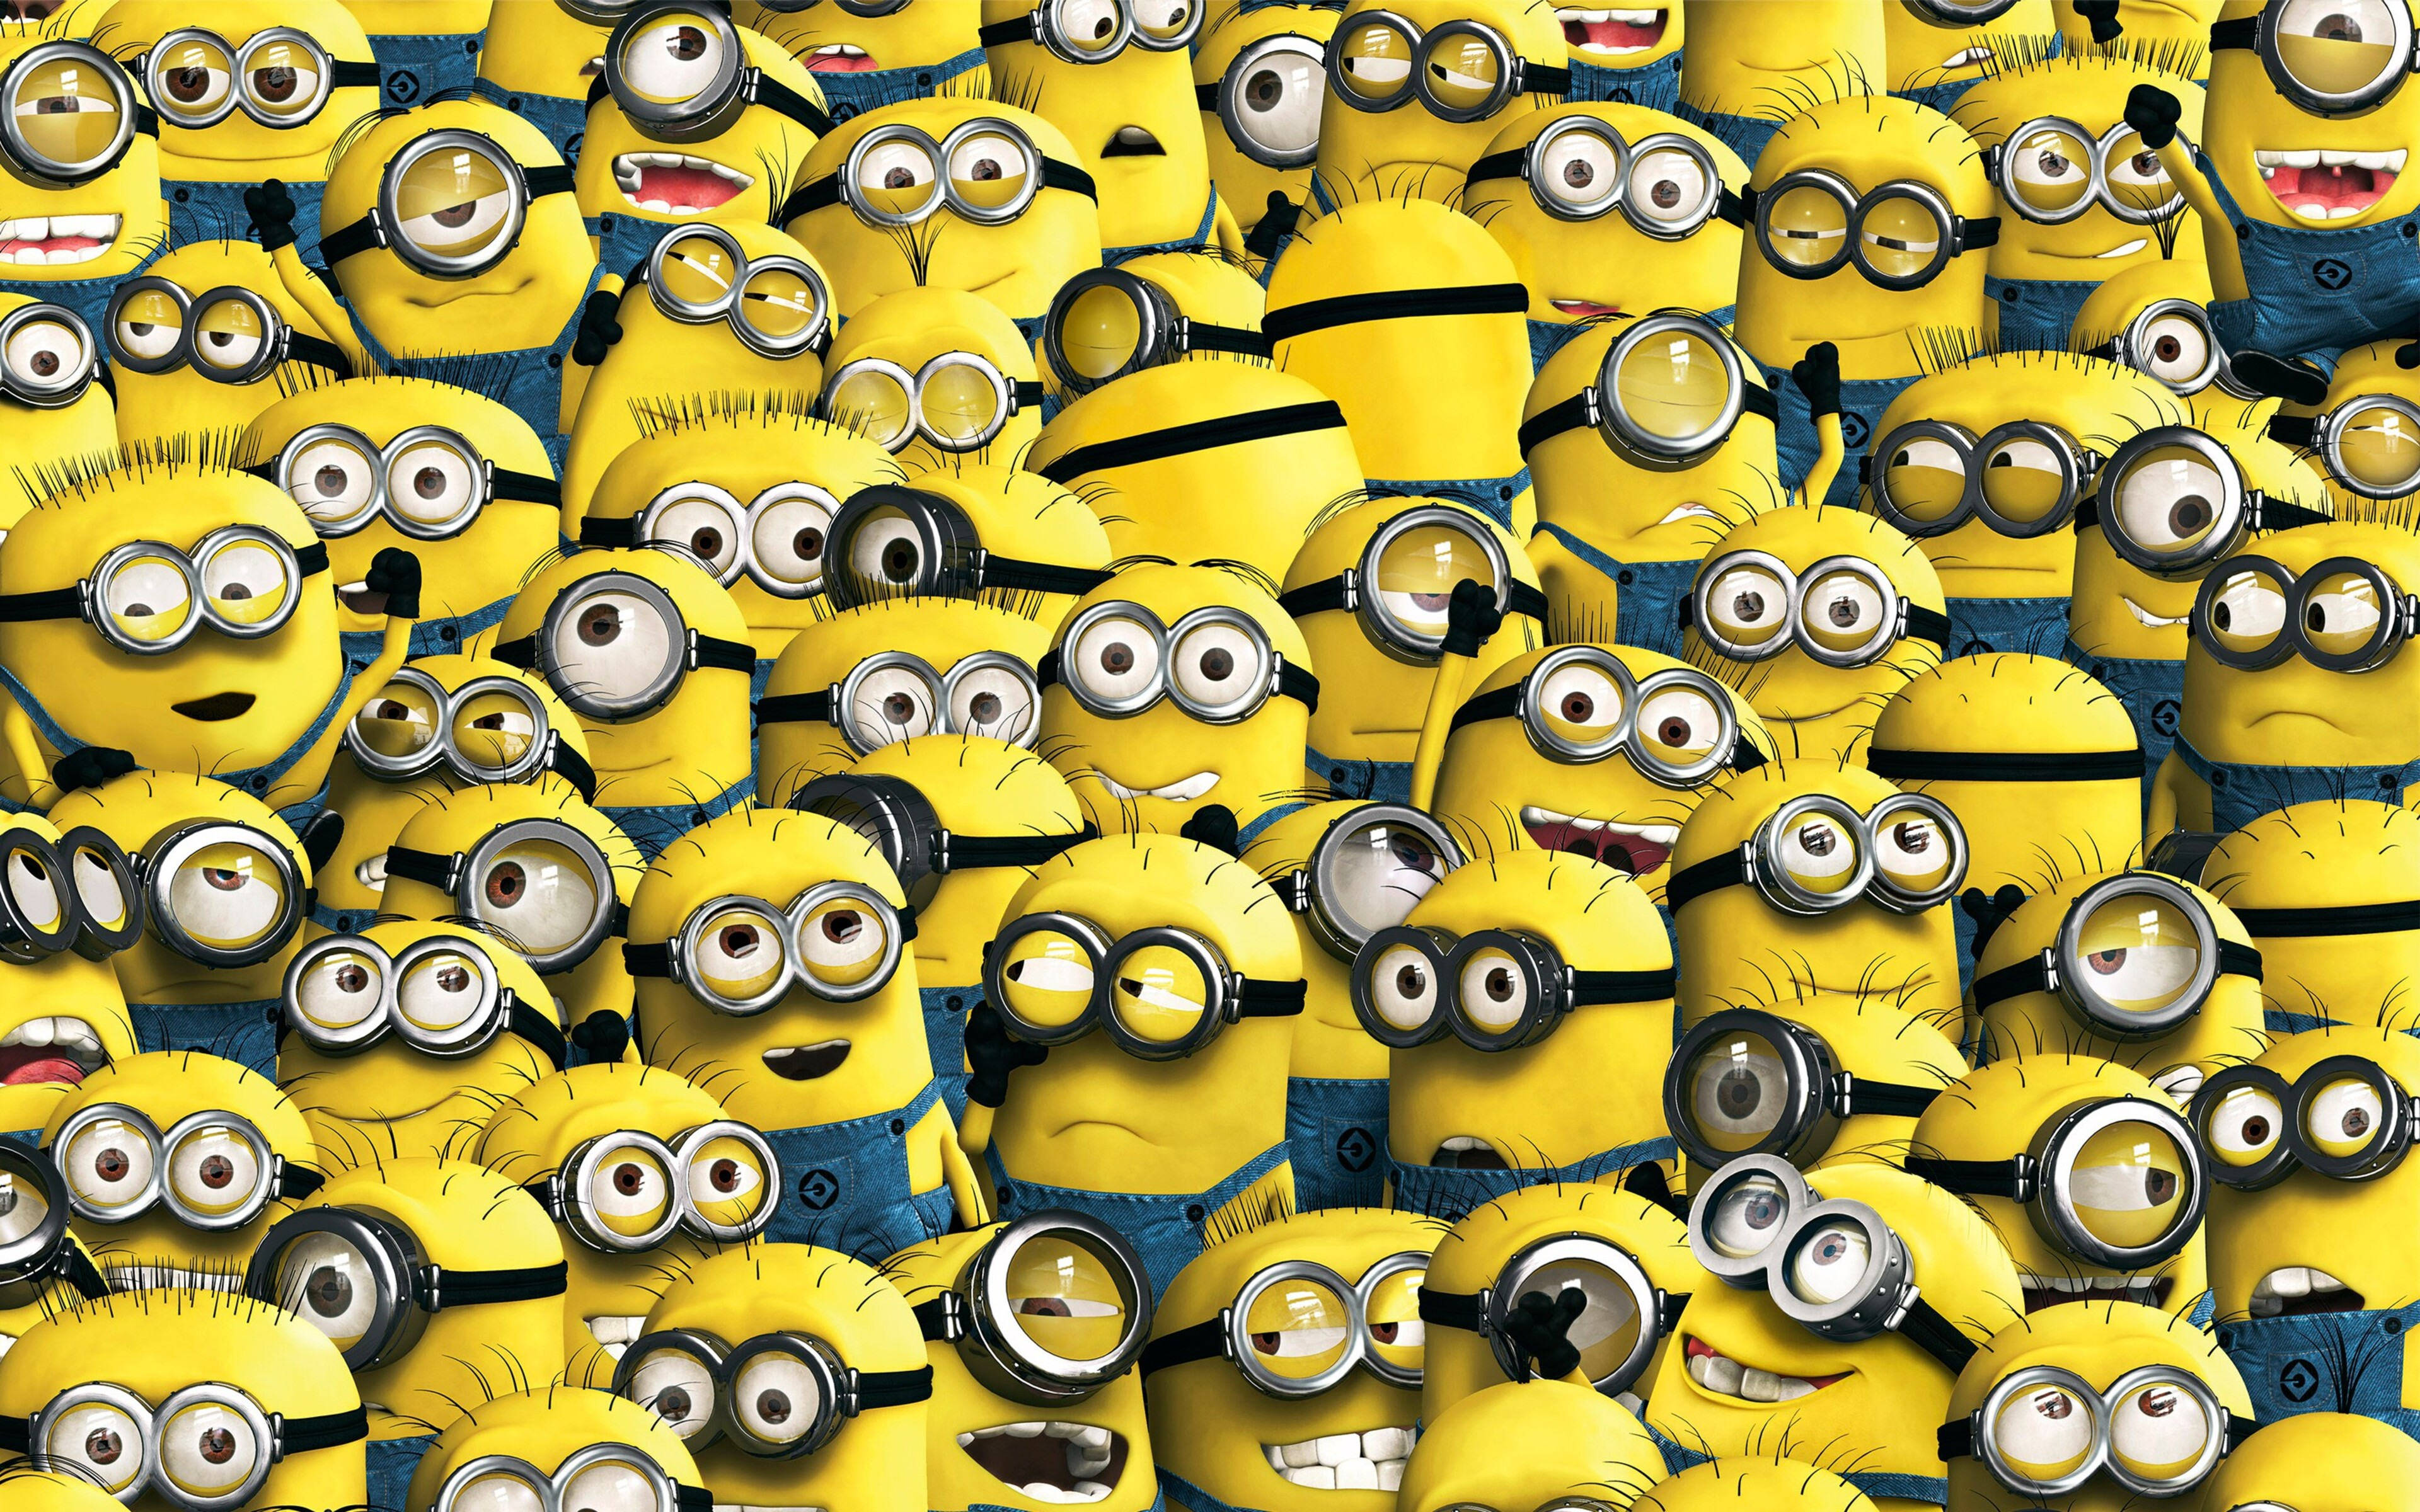 3840x2400 Minions 6 4k HD 4k Wallpapers, Images